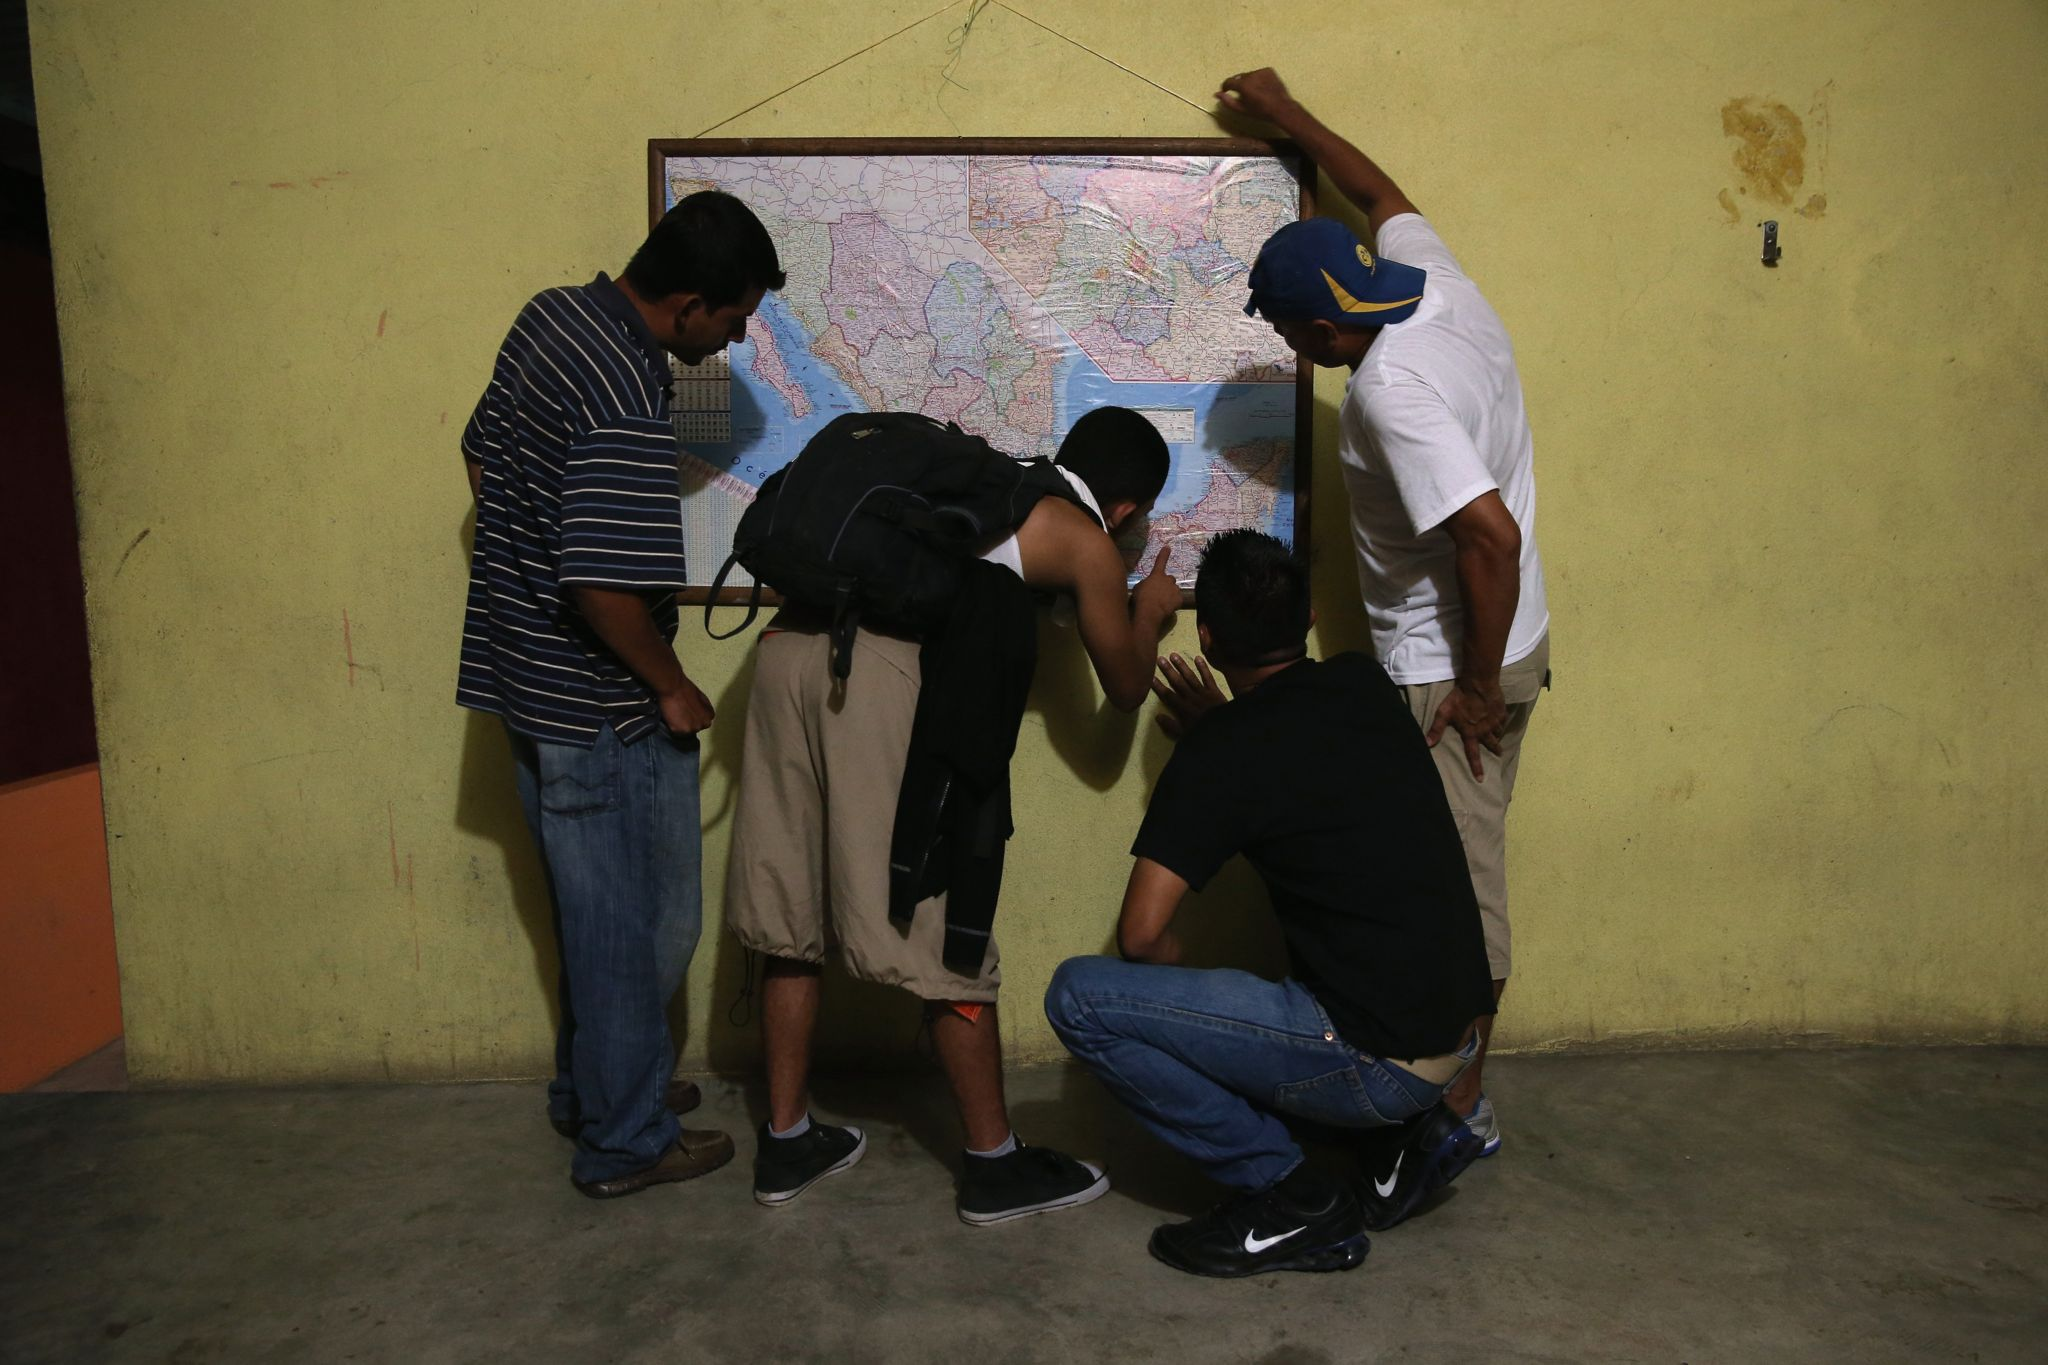 Honduran immigrants inspect a map of Mexico while staying at a shelter for undocumented immigrants on September 14, 2014 in Tenosique, Mexico.